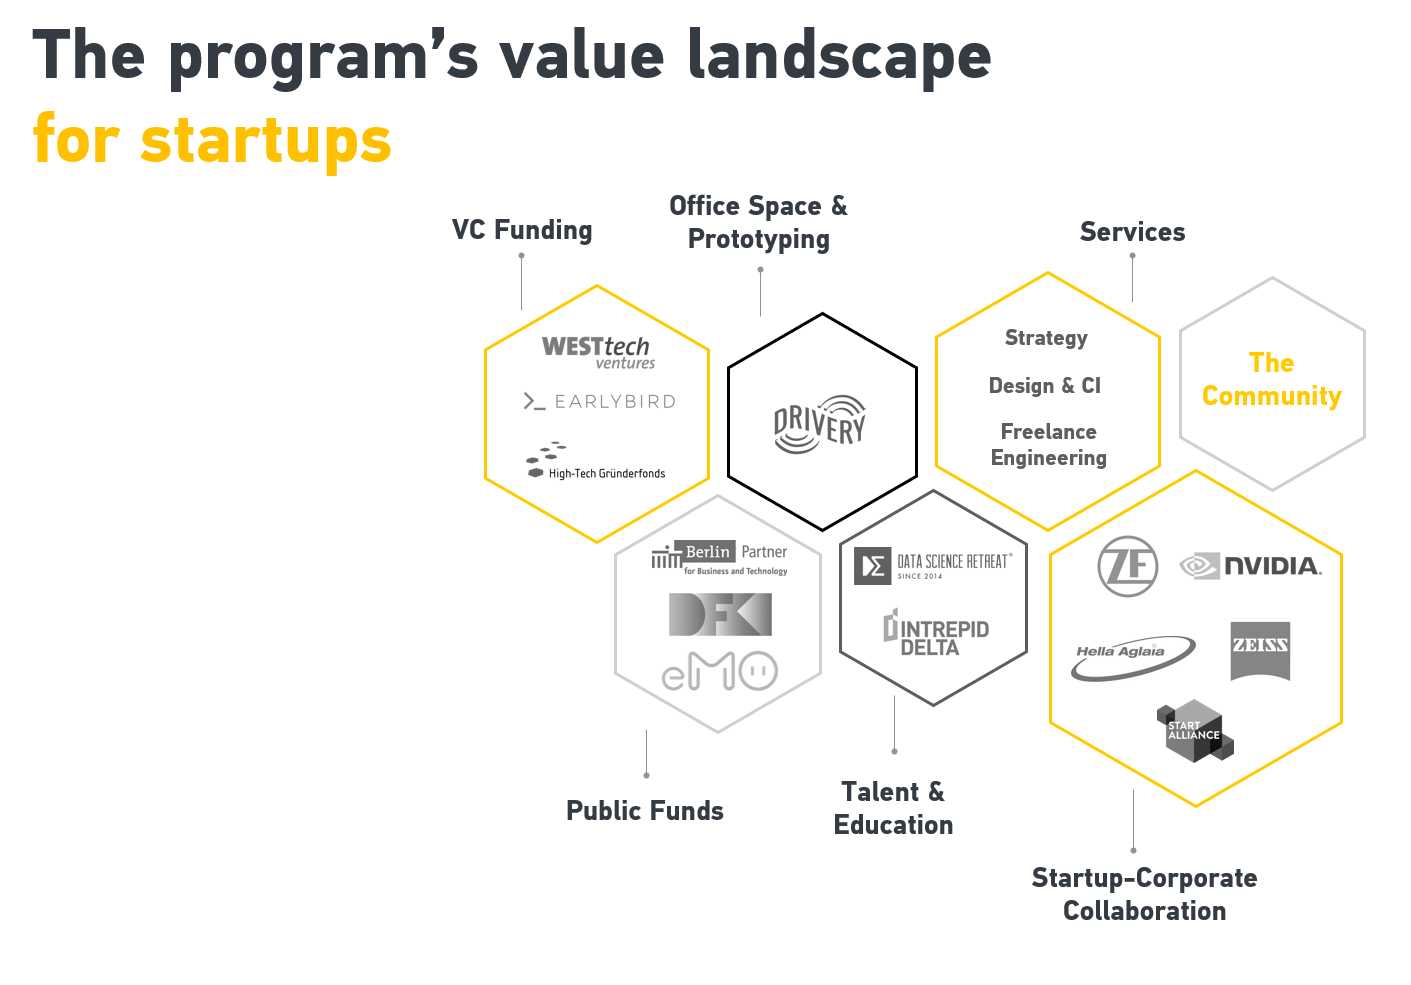 Value Landscape for Startups